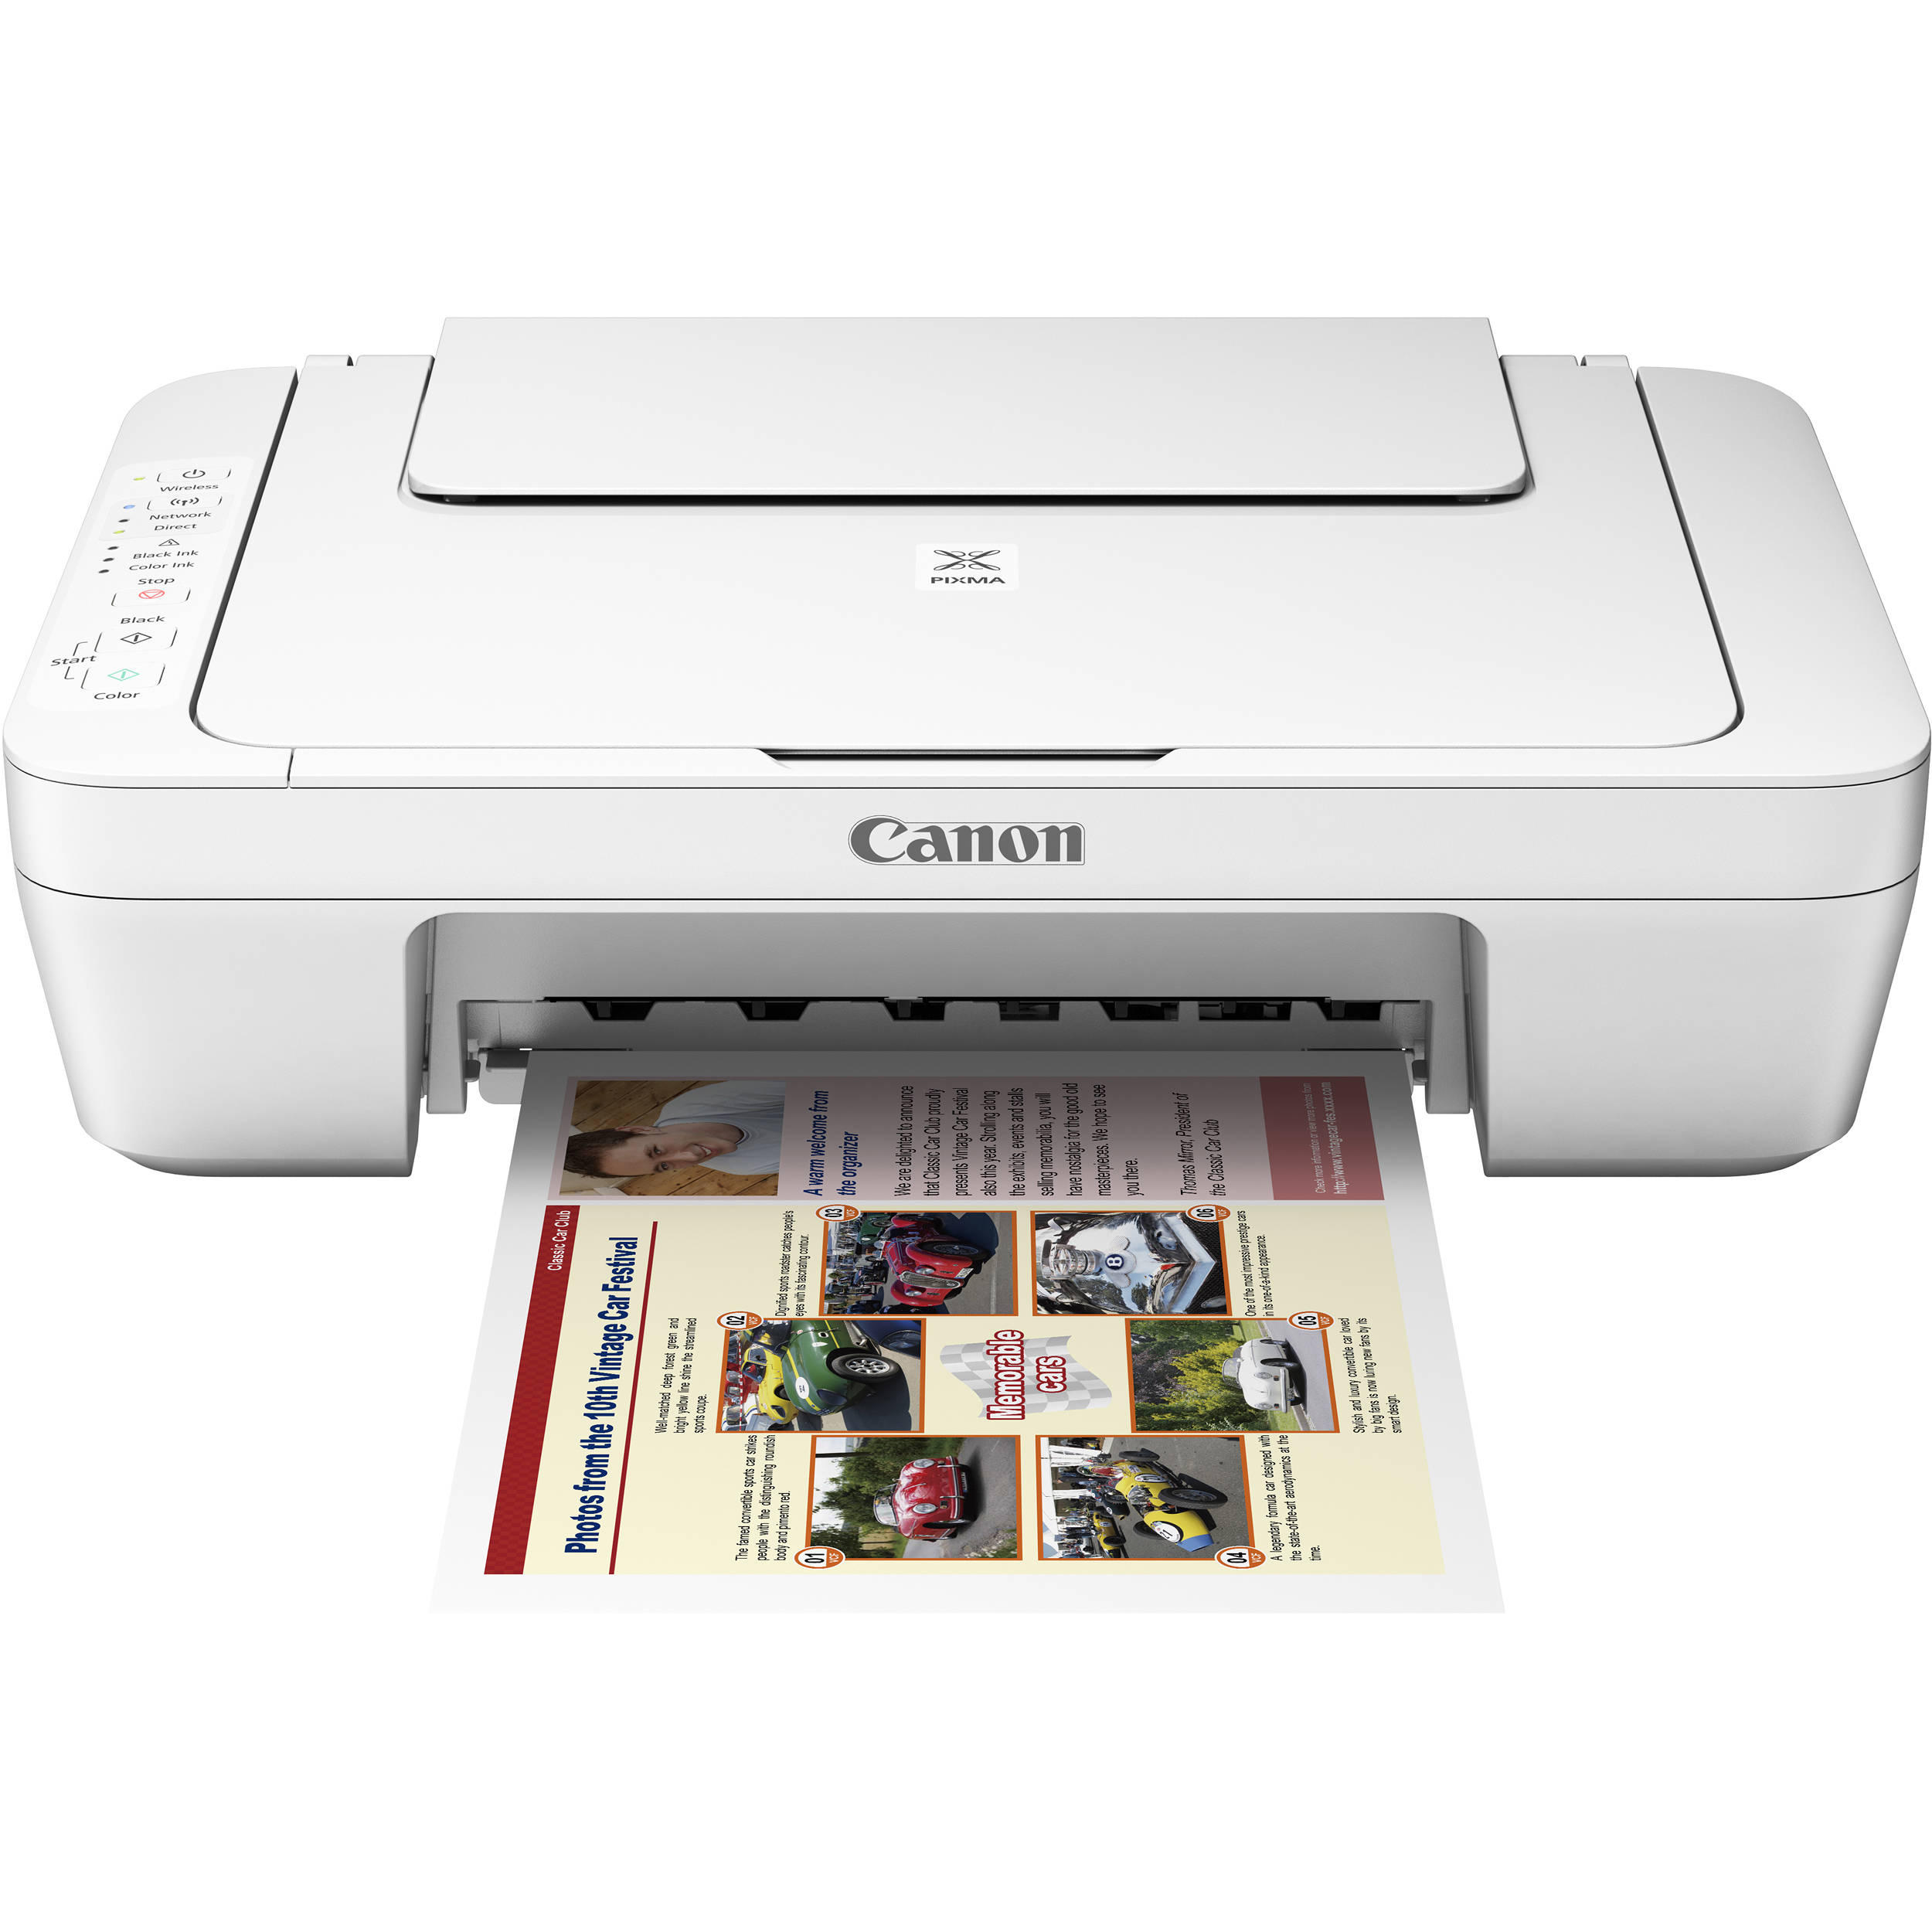 Canon All In One Canon Pixma Mg3020 All In One Color Inkjet Printer At